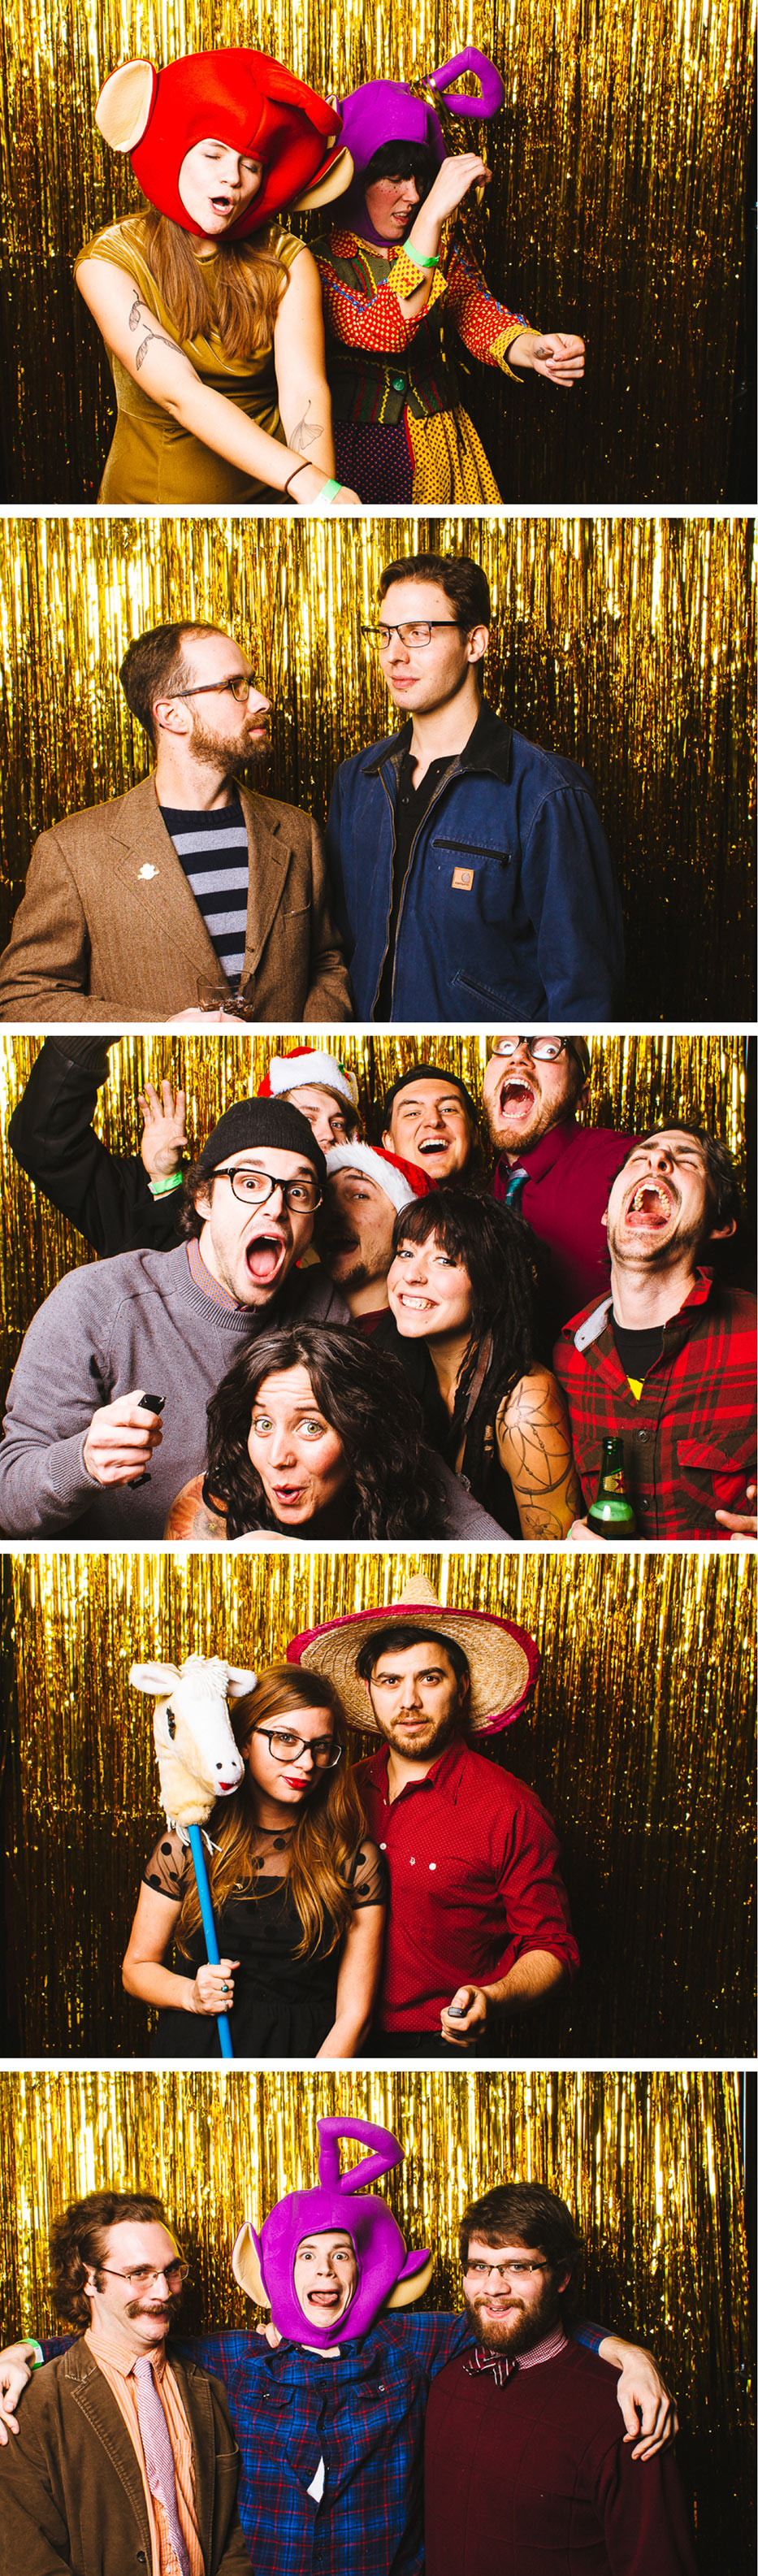 CK-Photo-Nashville-Photobooth-B6.jpg